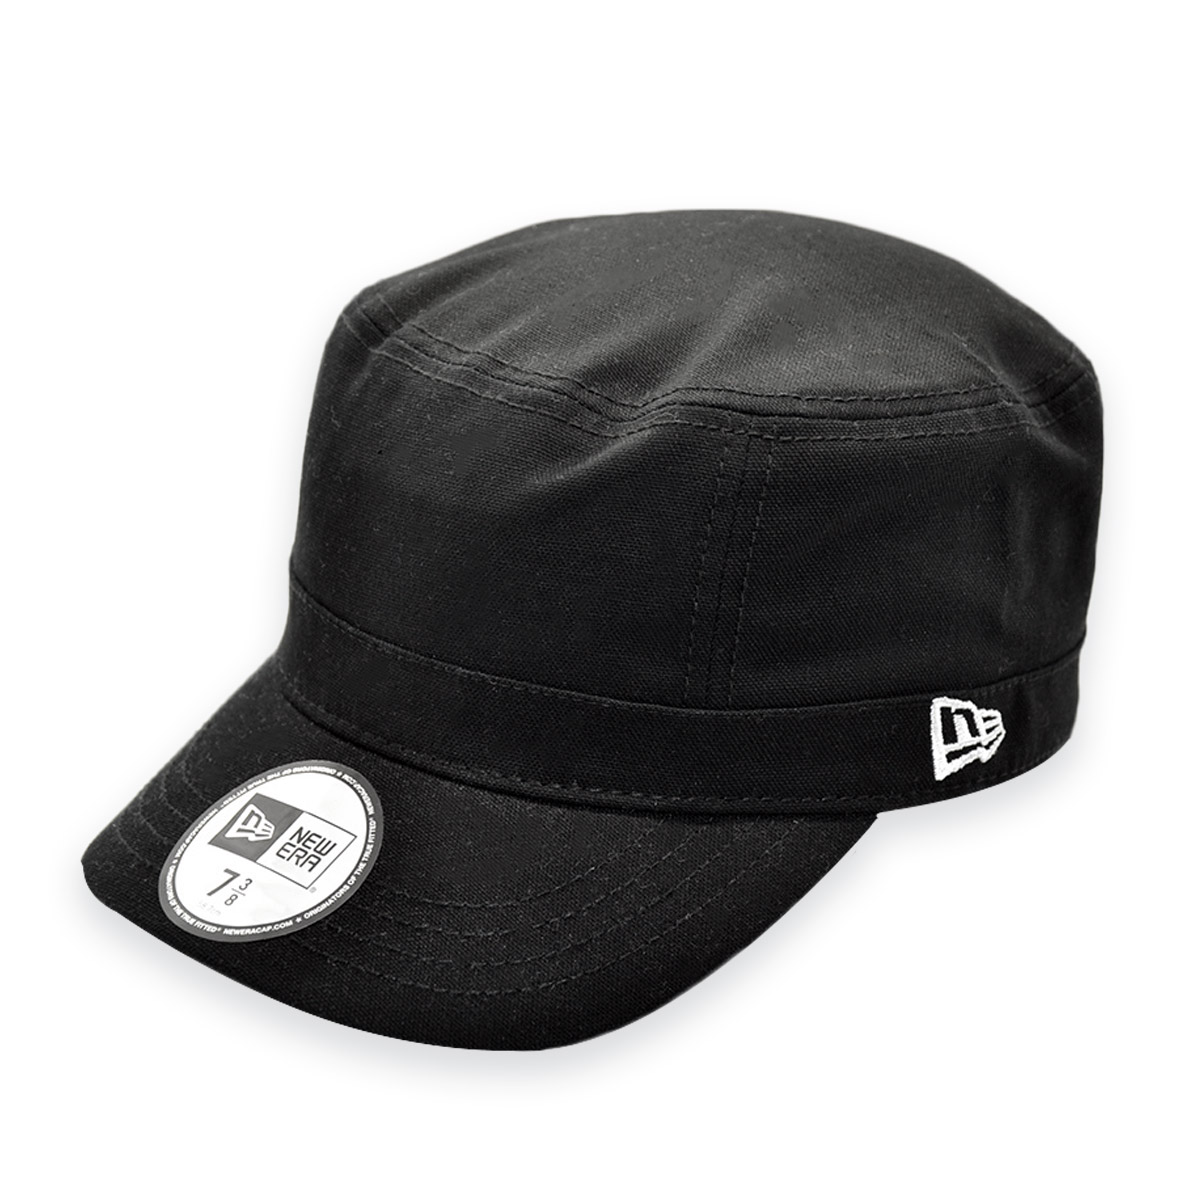 0e1d996f7d4 NEW ERA BLANK BLACK ARMY STYLE FITTED CURVED BRIM CAP HAT 7-3 8 ...